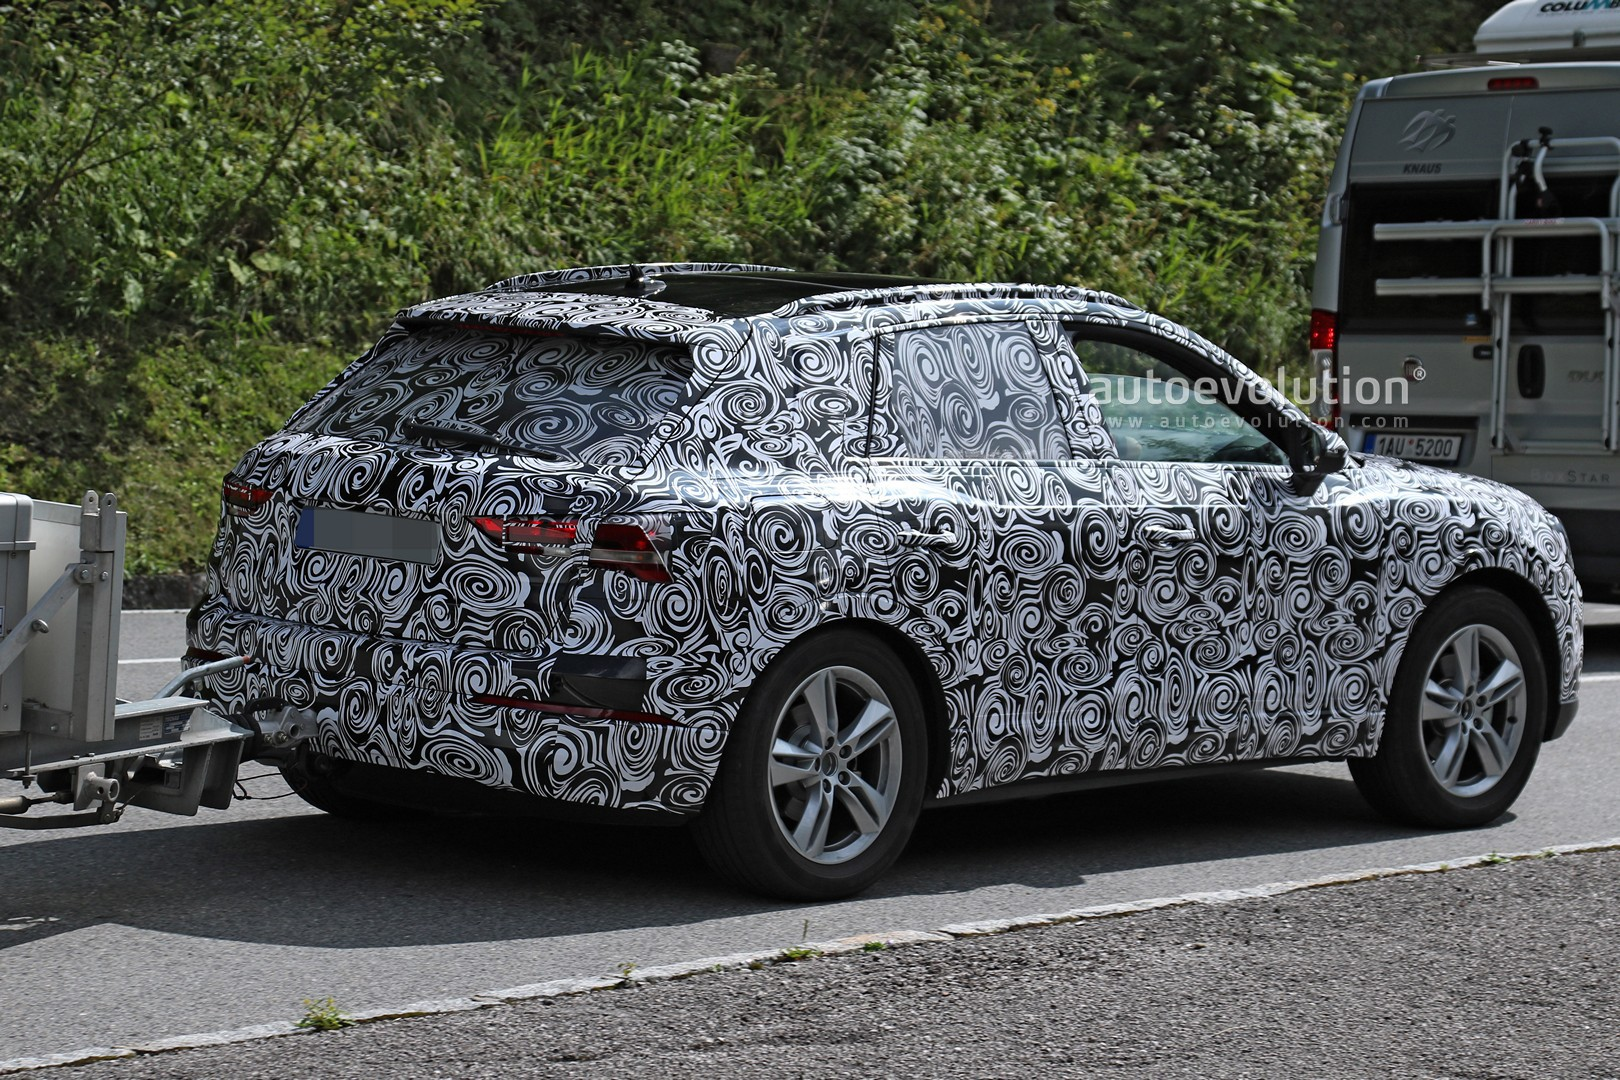 2019 Audi Q3 Spied During Alpine Testing Shows Sporty Sportback Design